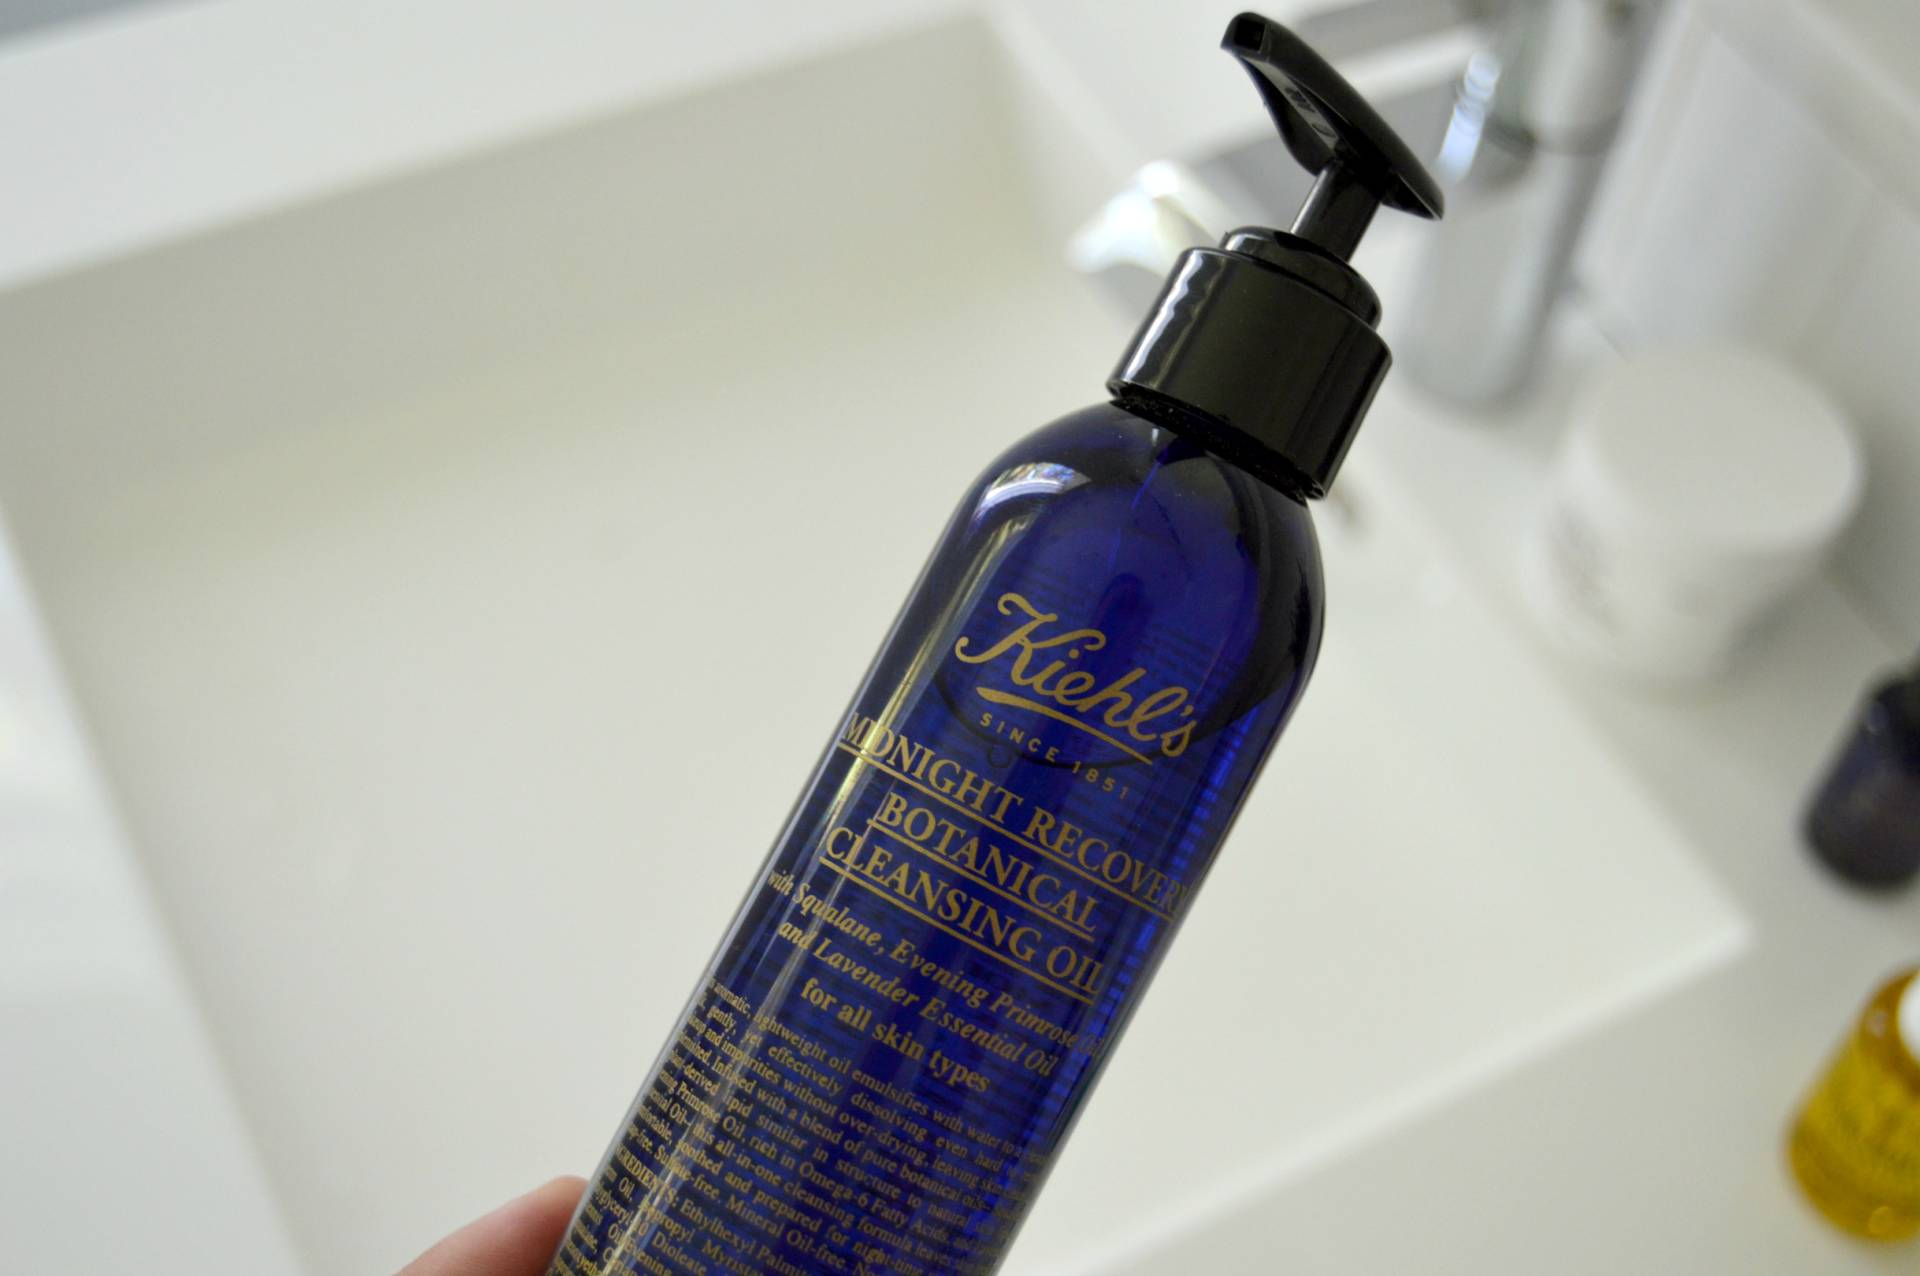 kiehls-midnight-recovery-cleansing-oil-makeup-remover-inhautepursuit-review-omgbart